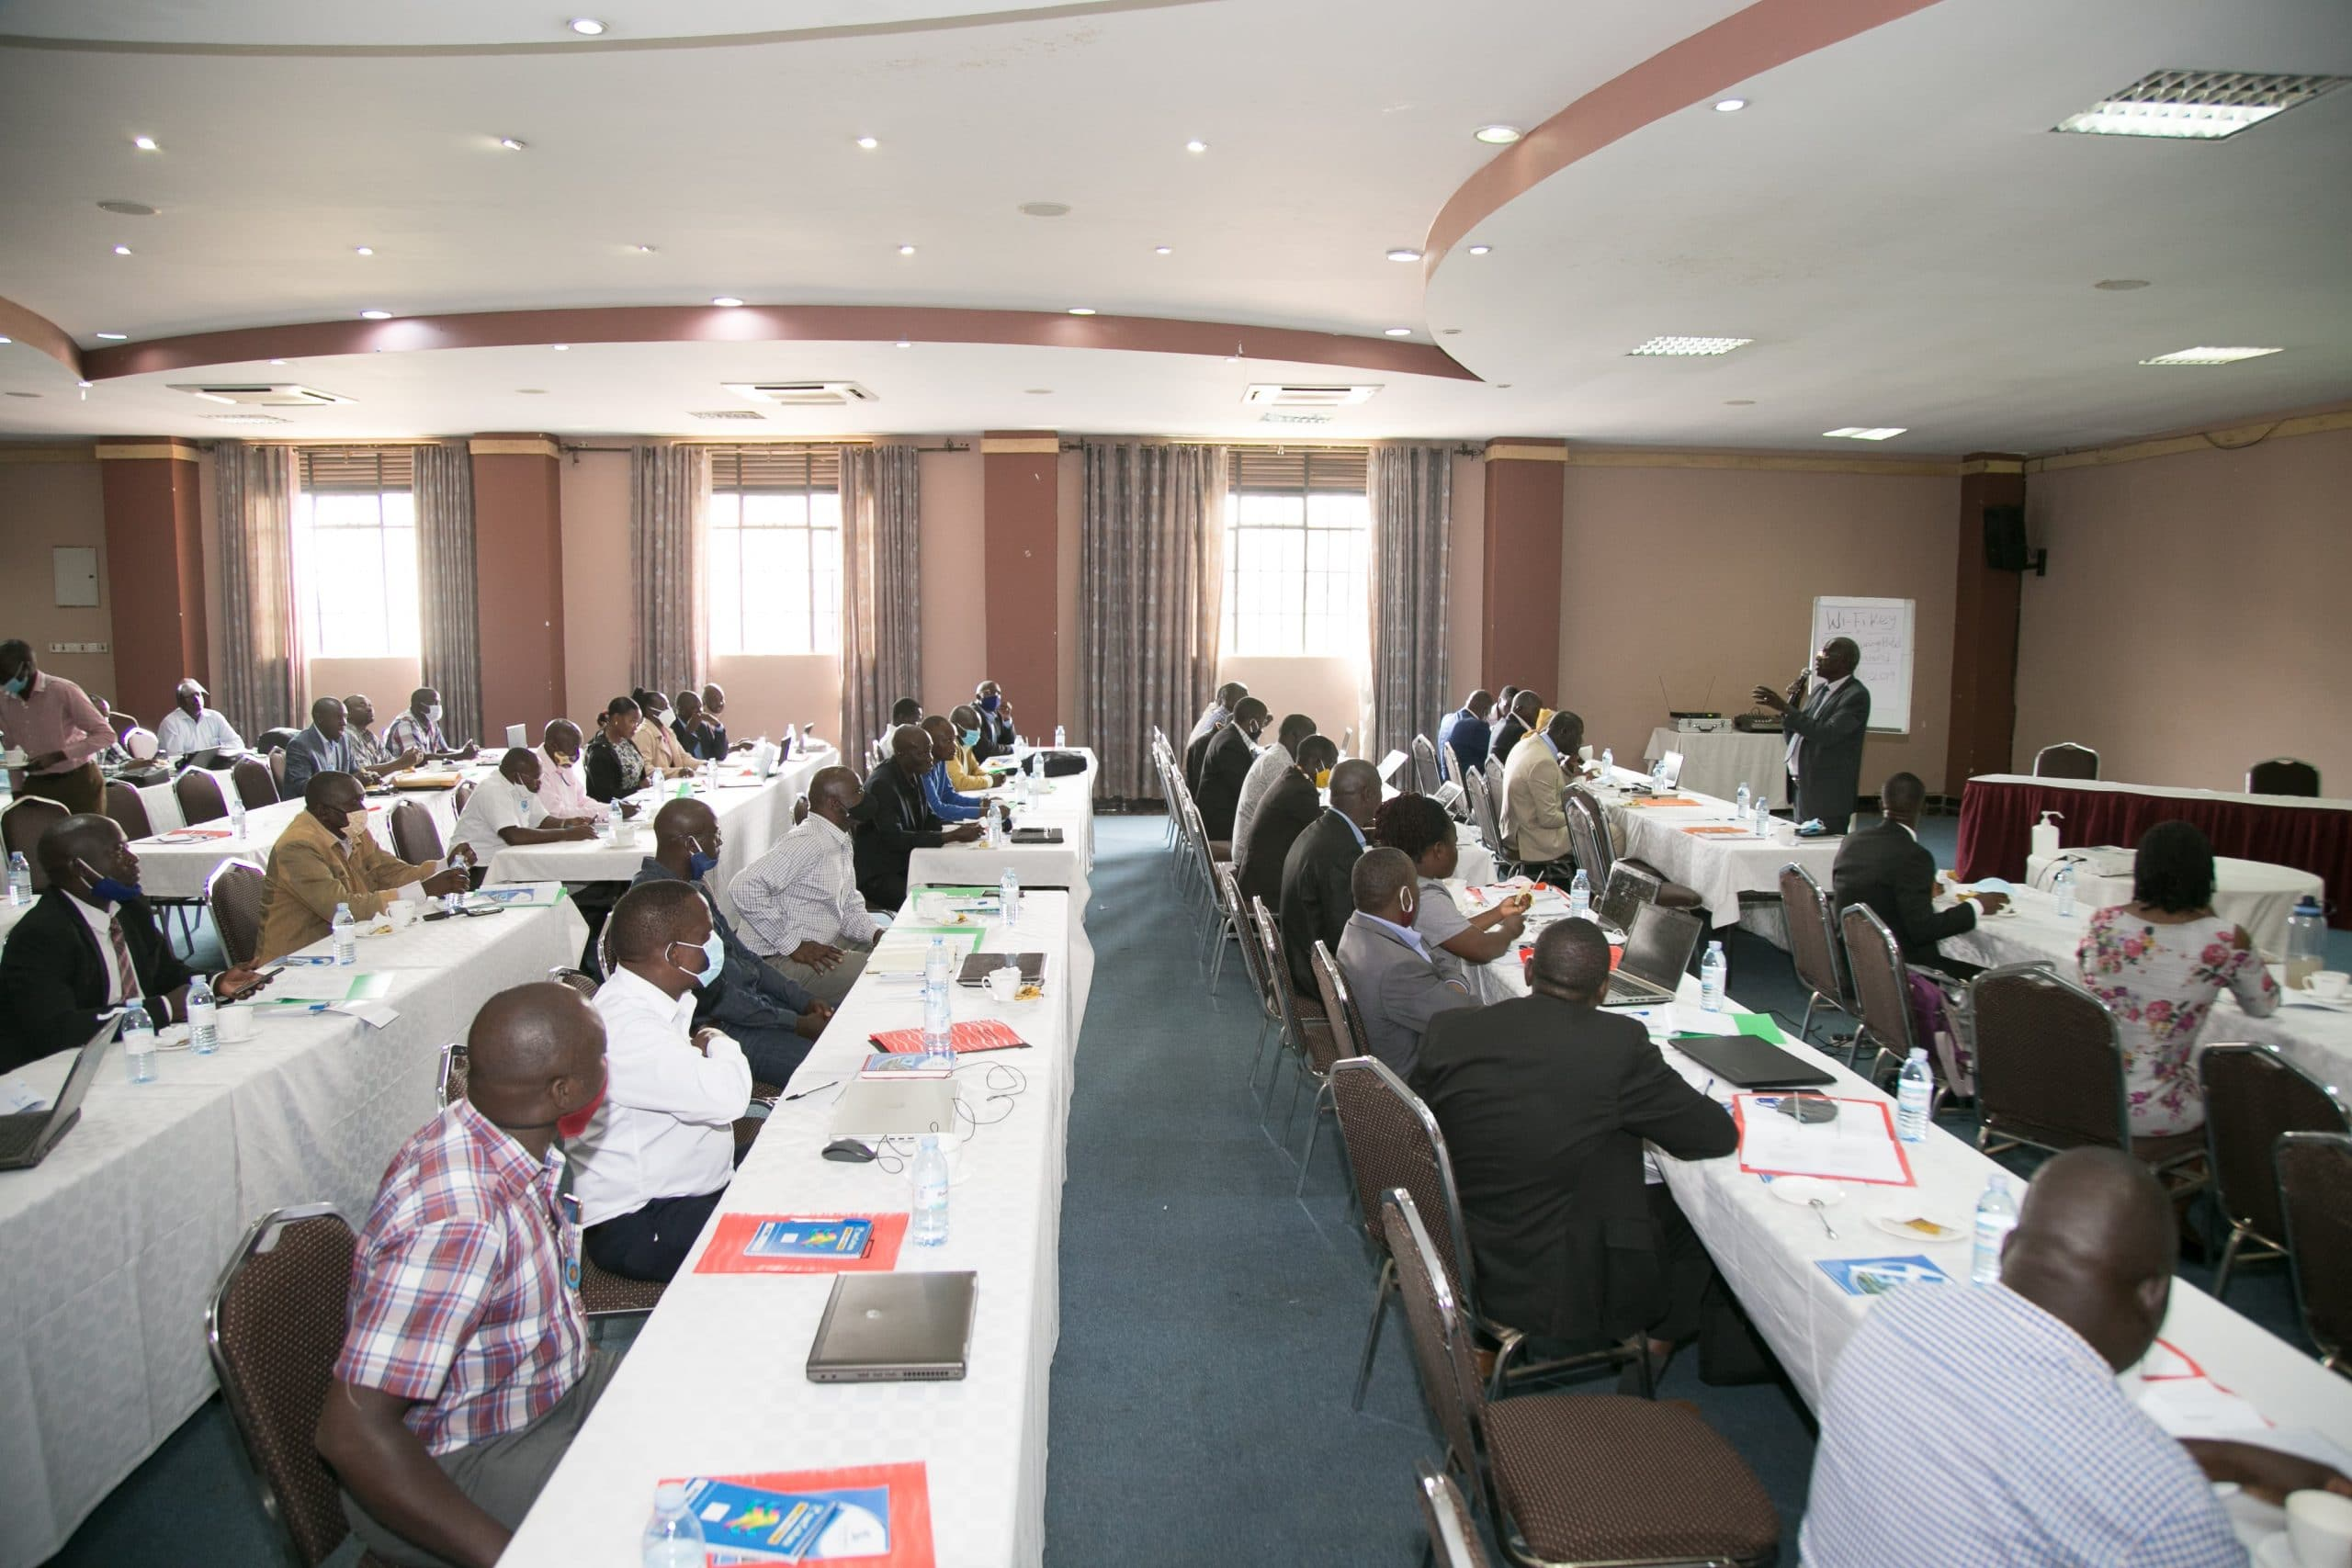 Training of Ministry of Local Government unregistered Engineers employed in the District and Municipalities to equip them with necessary skills of writing both Career and Technical Reports required for professional registration on Thursday 15th - Friday 16th October 2020.